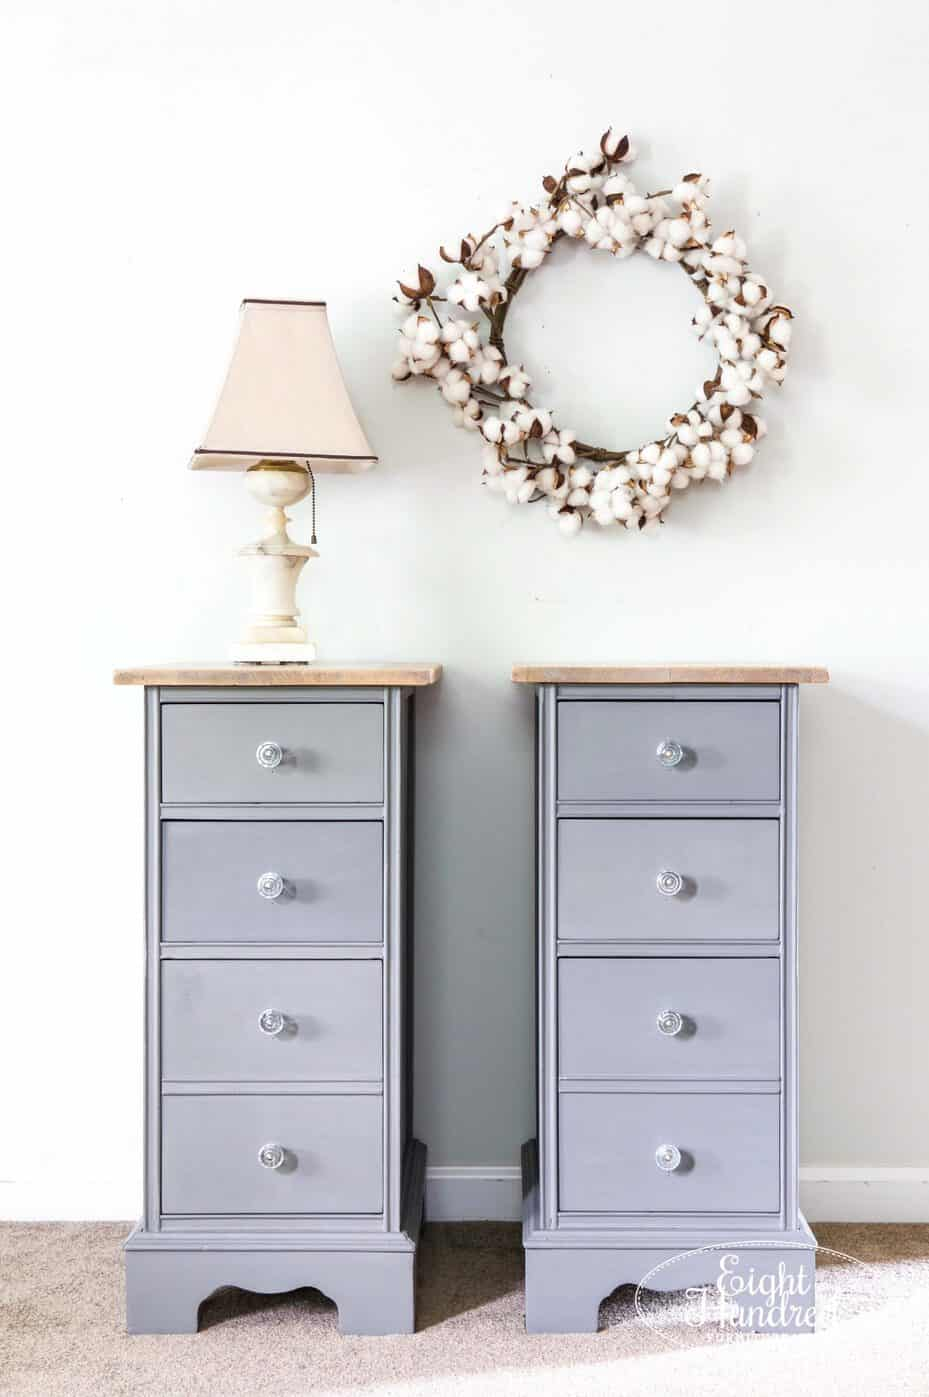 Full length view of Trophy nightstands